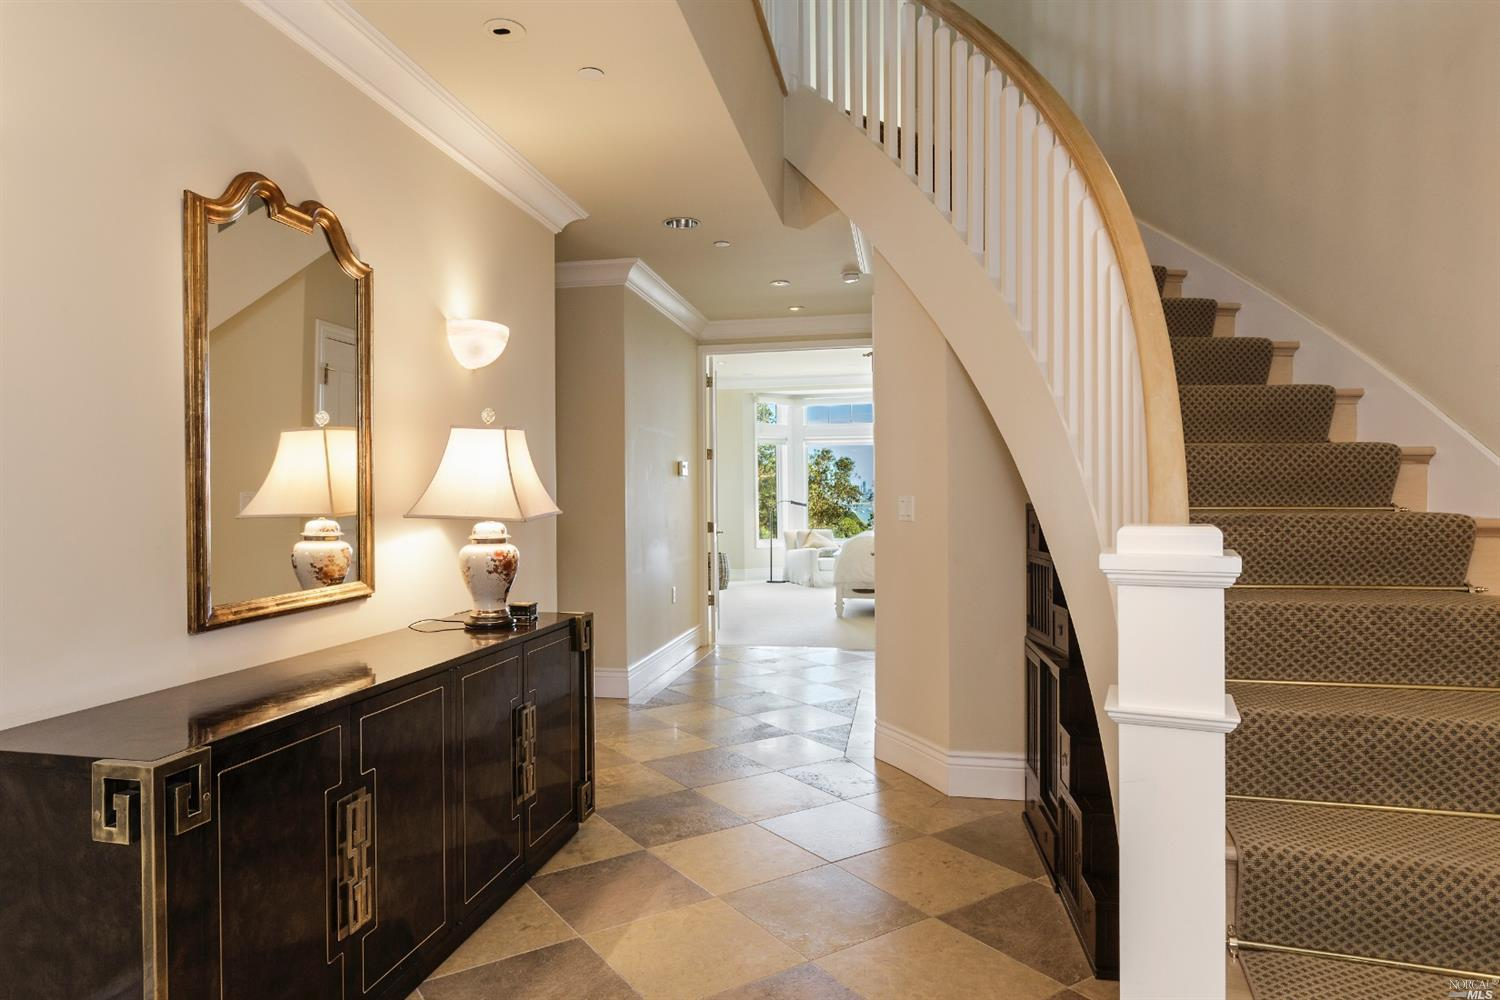 Additional photo for property listing at 30 De Silva Island Drive  MILL VALLEY, CALIFORNIA 94941